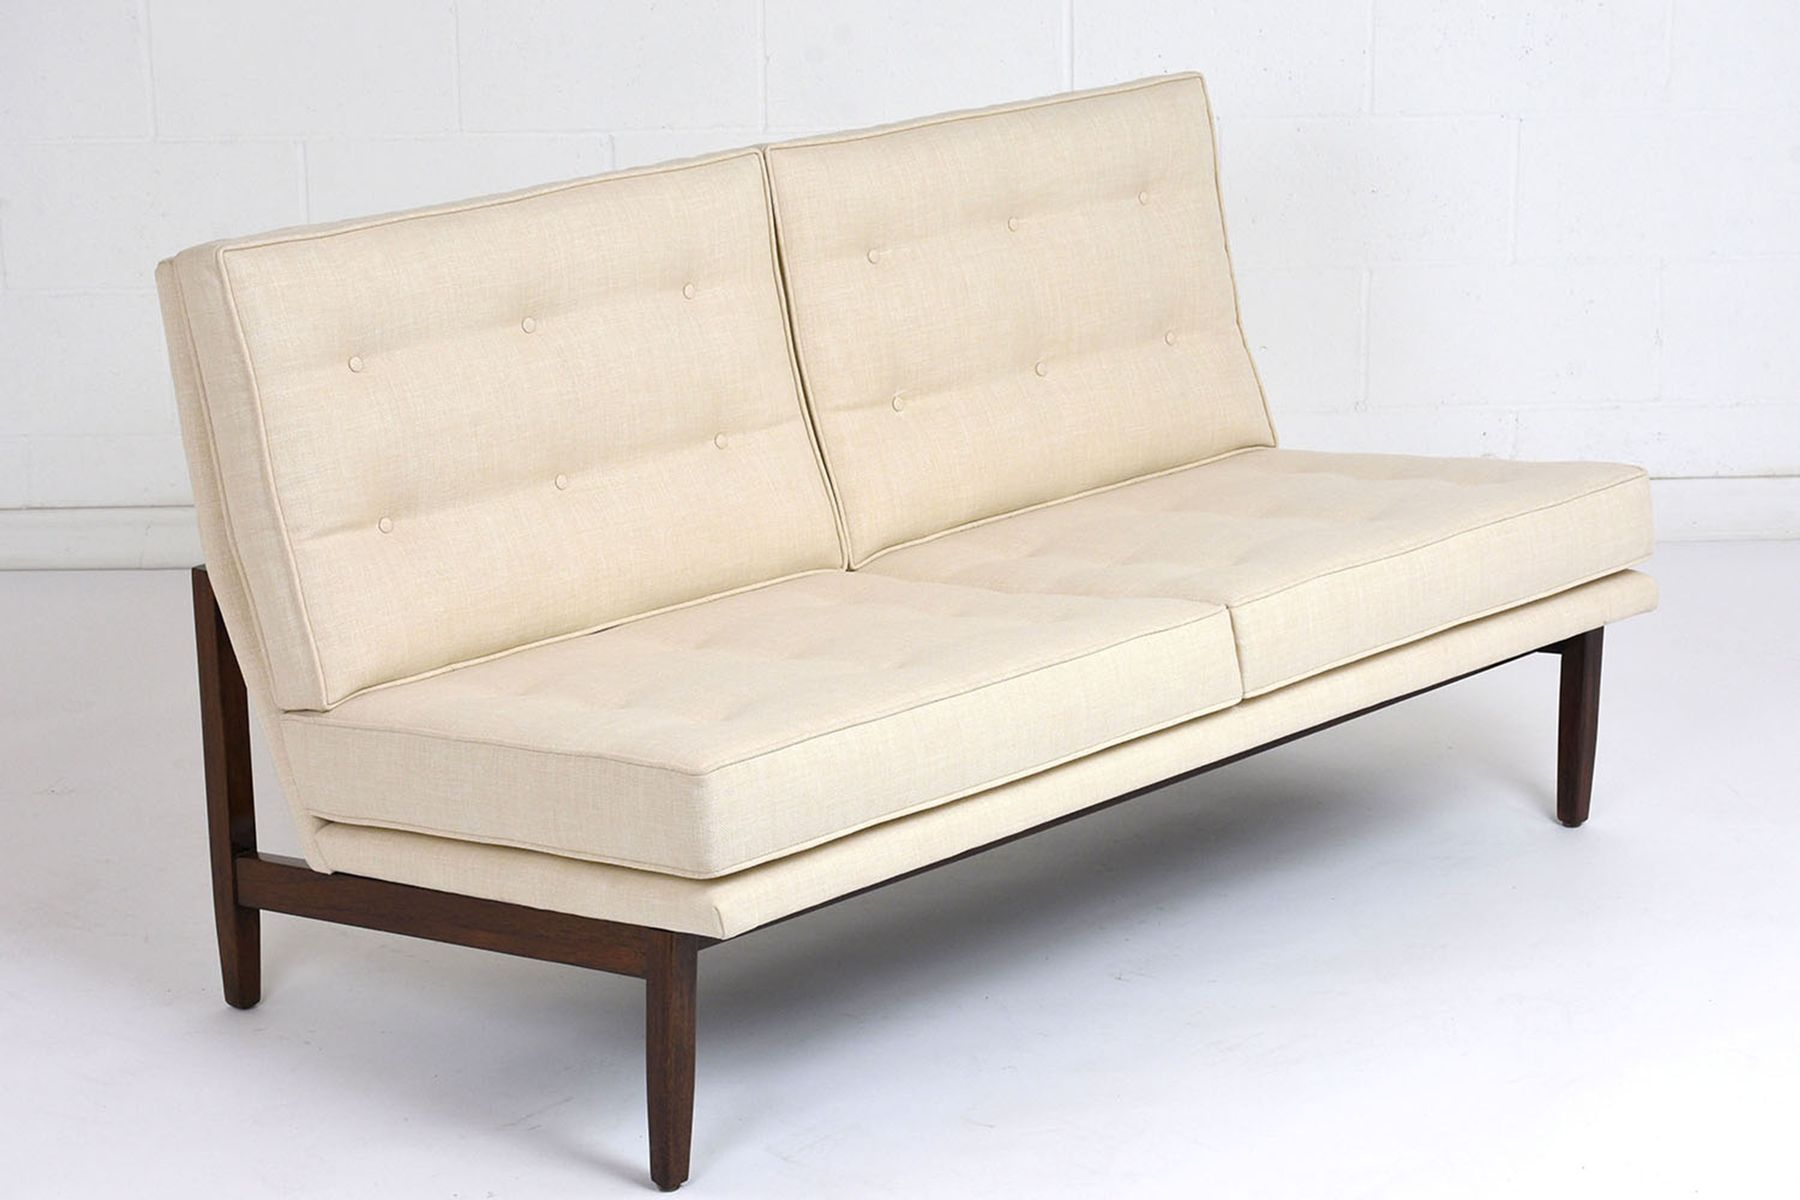 Mid Century Teak Sofa by Florence Knoll Bassett 1960s for sale at